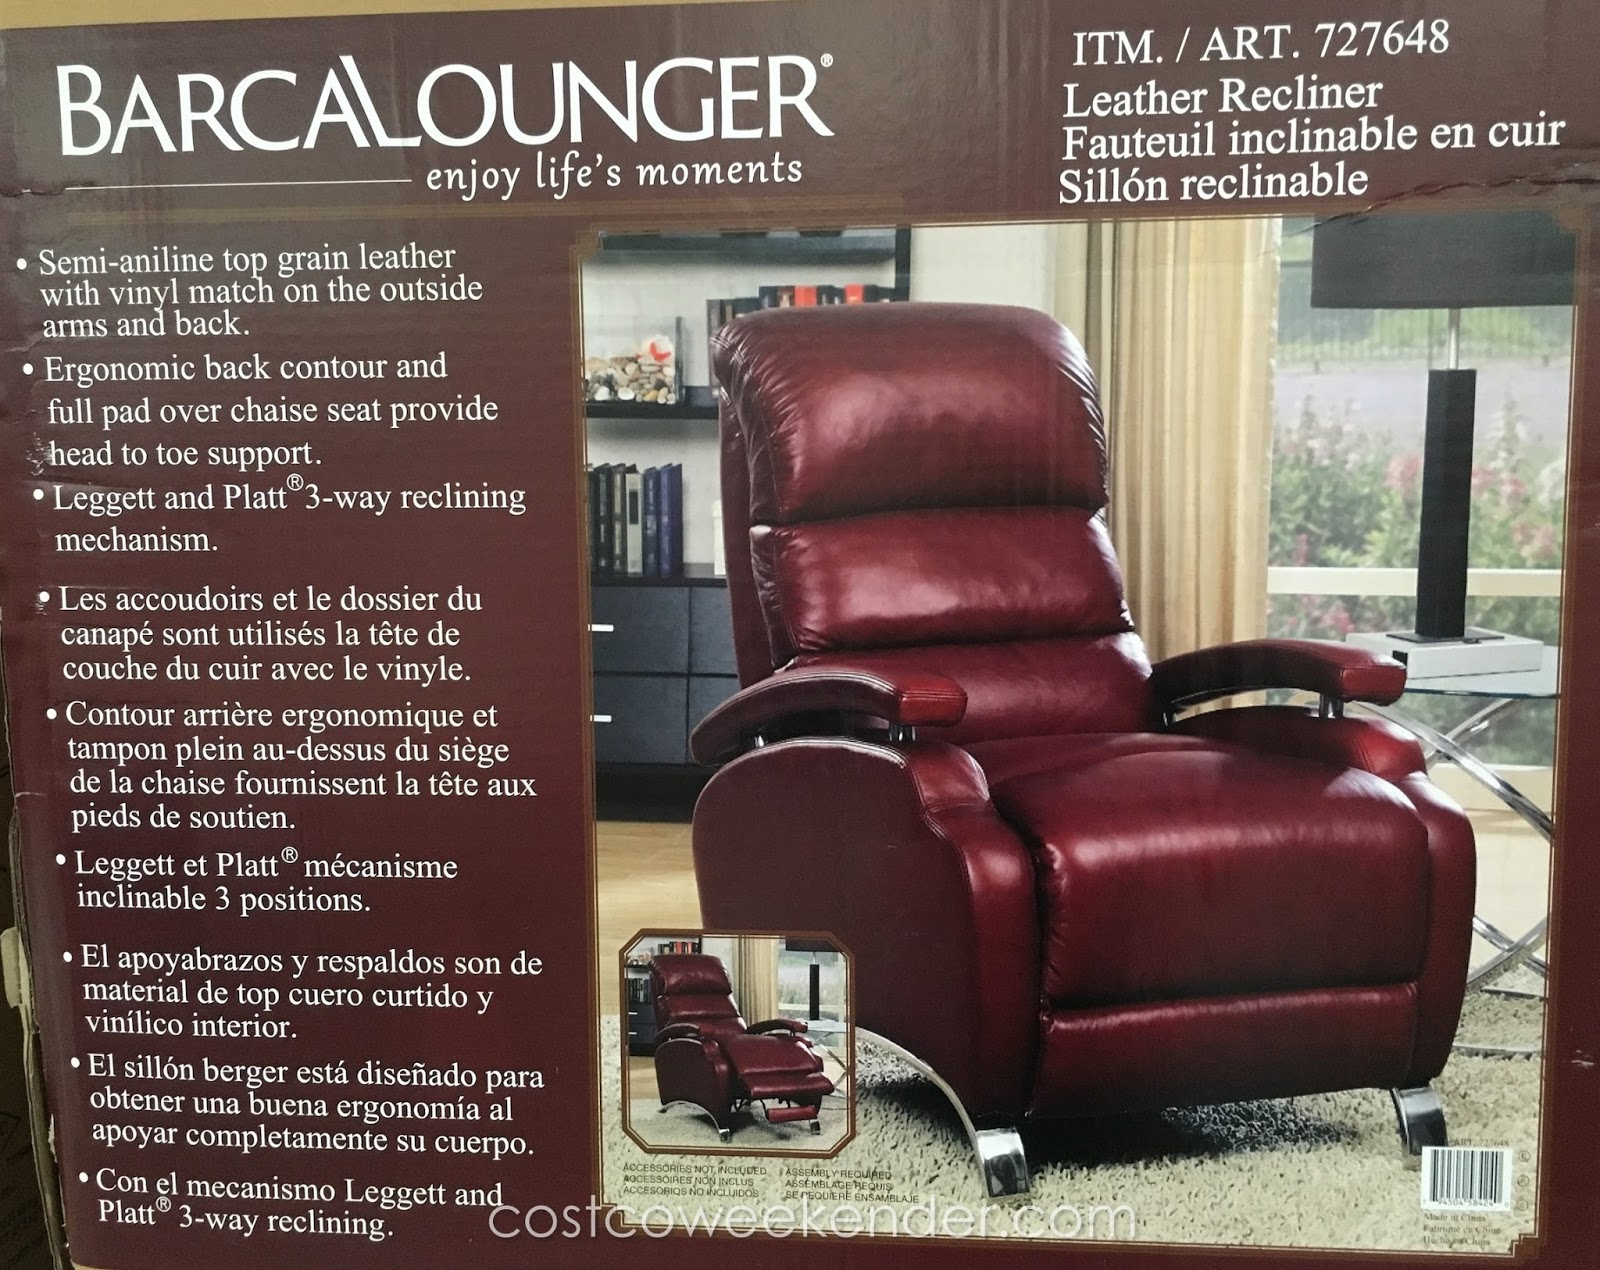 Barcalounger Leather Recliner Chair Costco Weekender